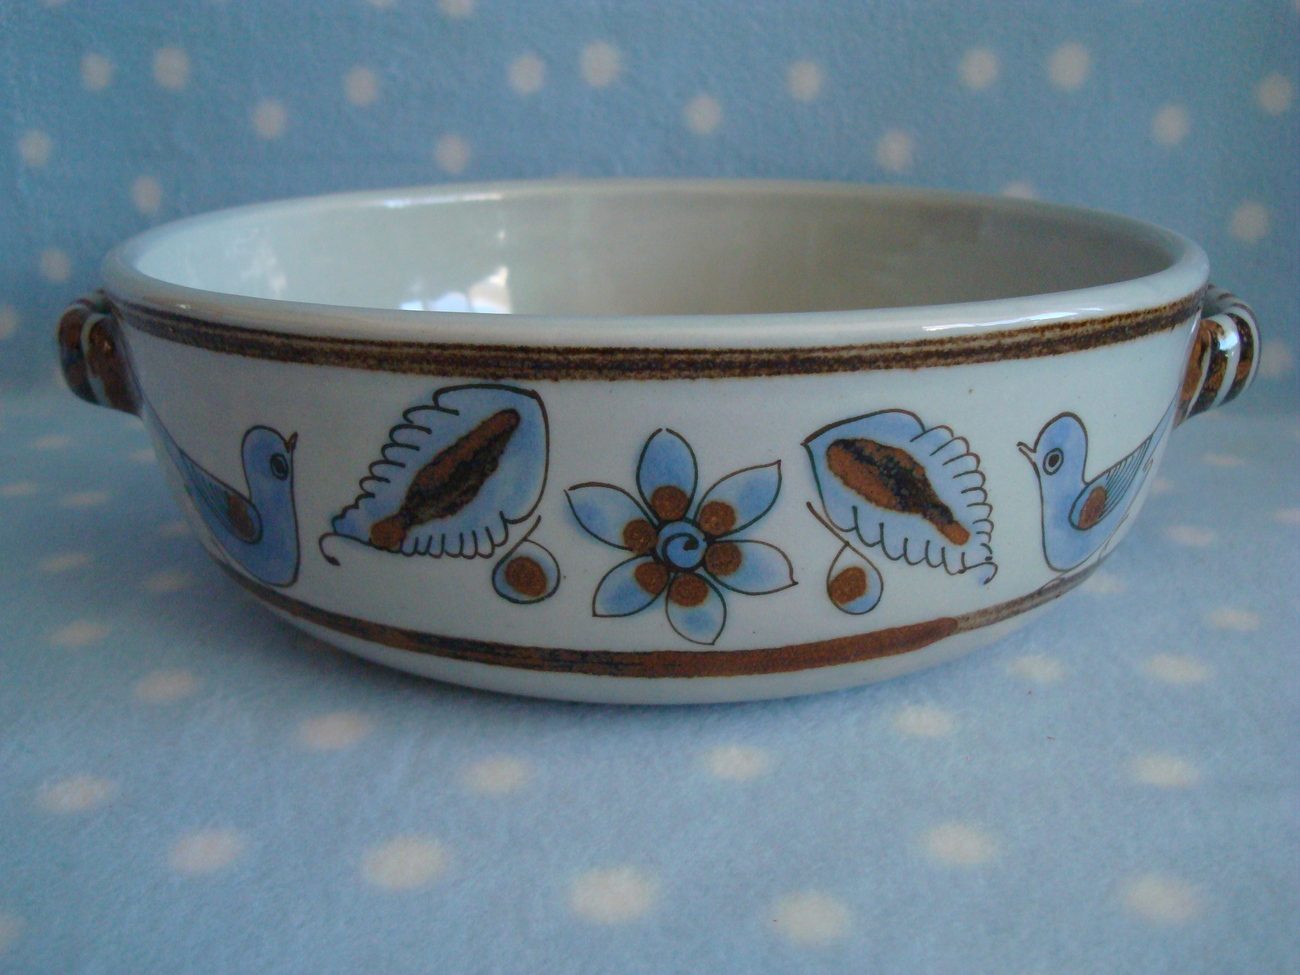 Casserole Mexico El Palomar BlueBird Scorpion mark 9-cup